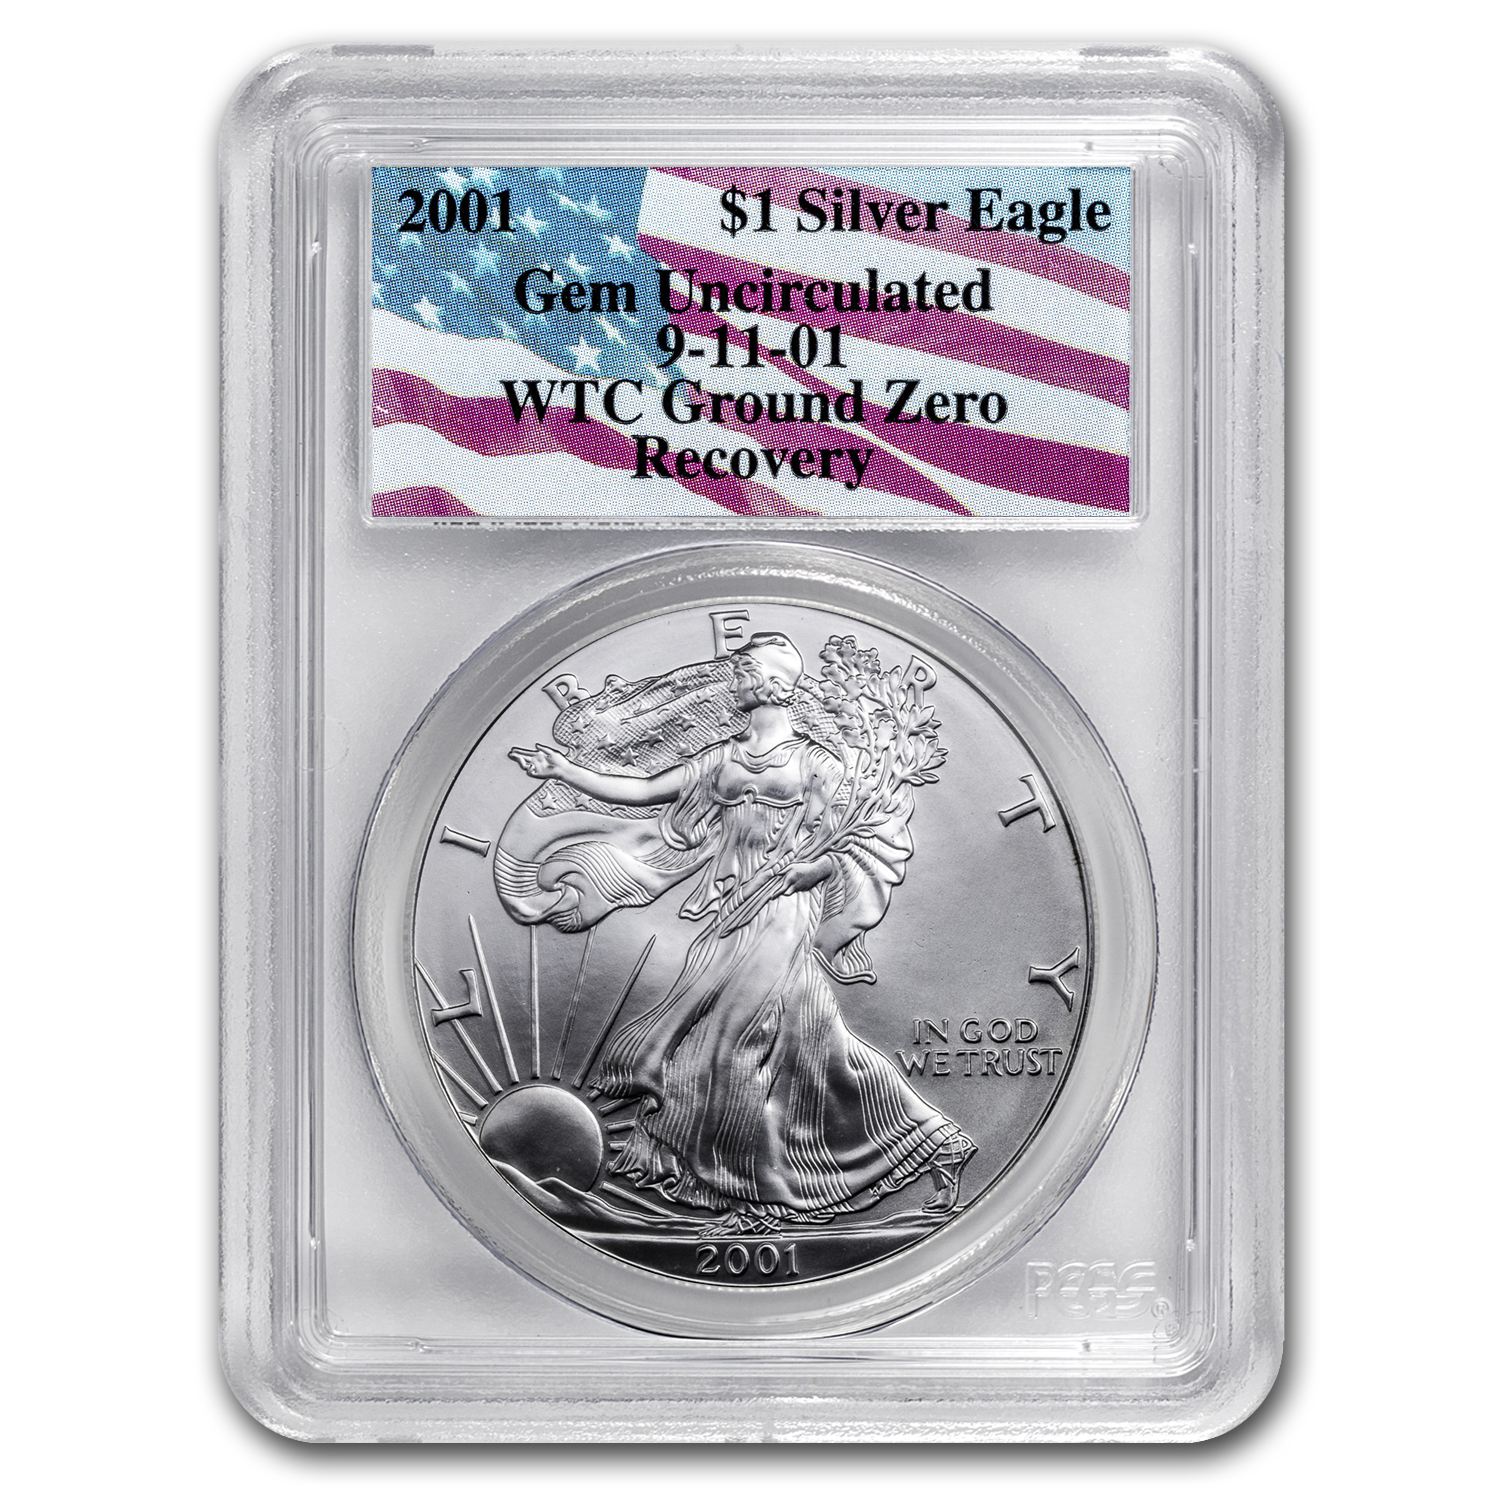 2001 Silver Eagle Gem Unc PCGS (WTC, Ground Zero Recovery)